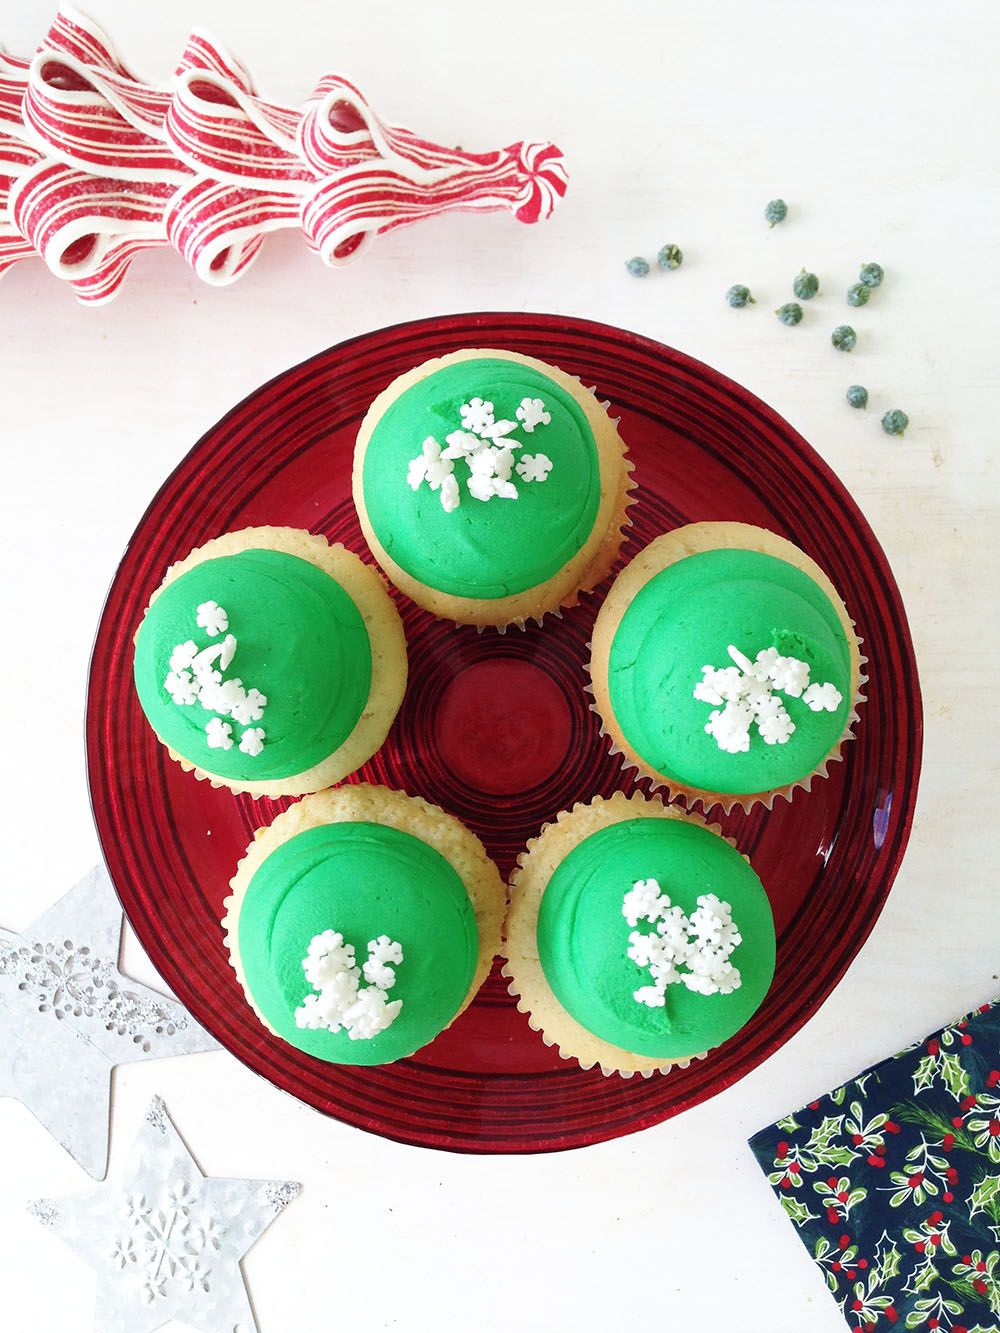 Vanilla Snowflake Cupcake - Regular $3.35 each